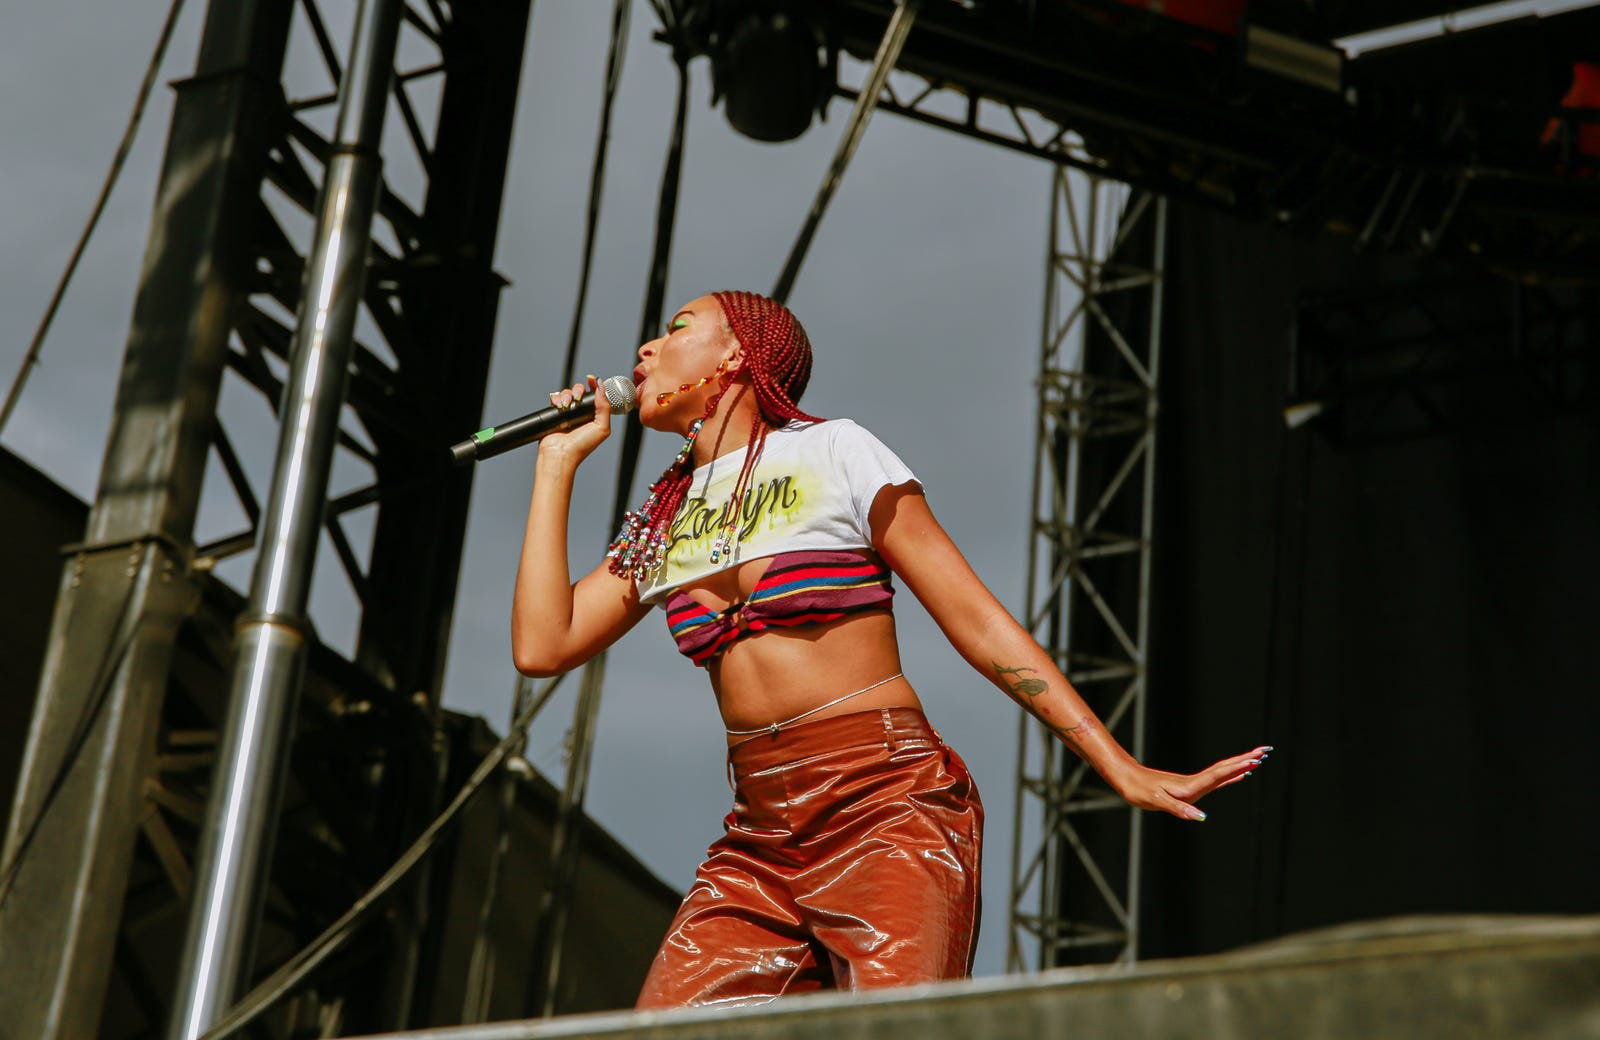 Ravyn Lenae performing at AfroPunk Brooklyn 2019.